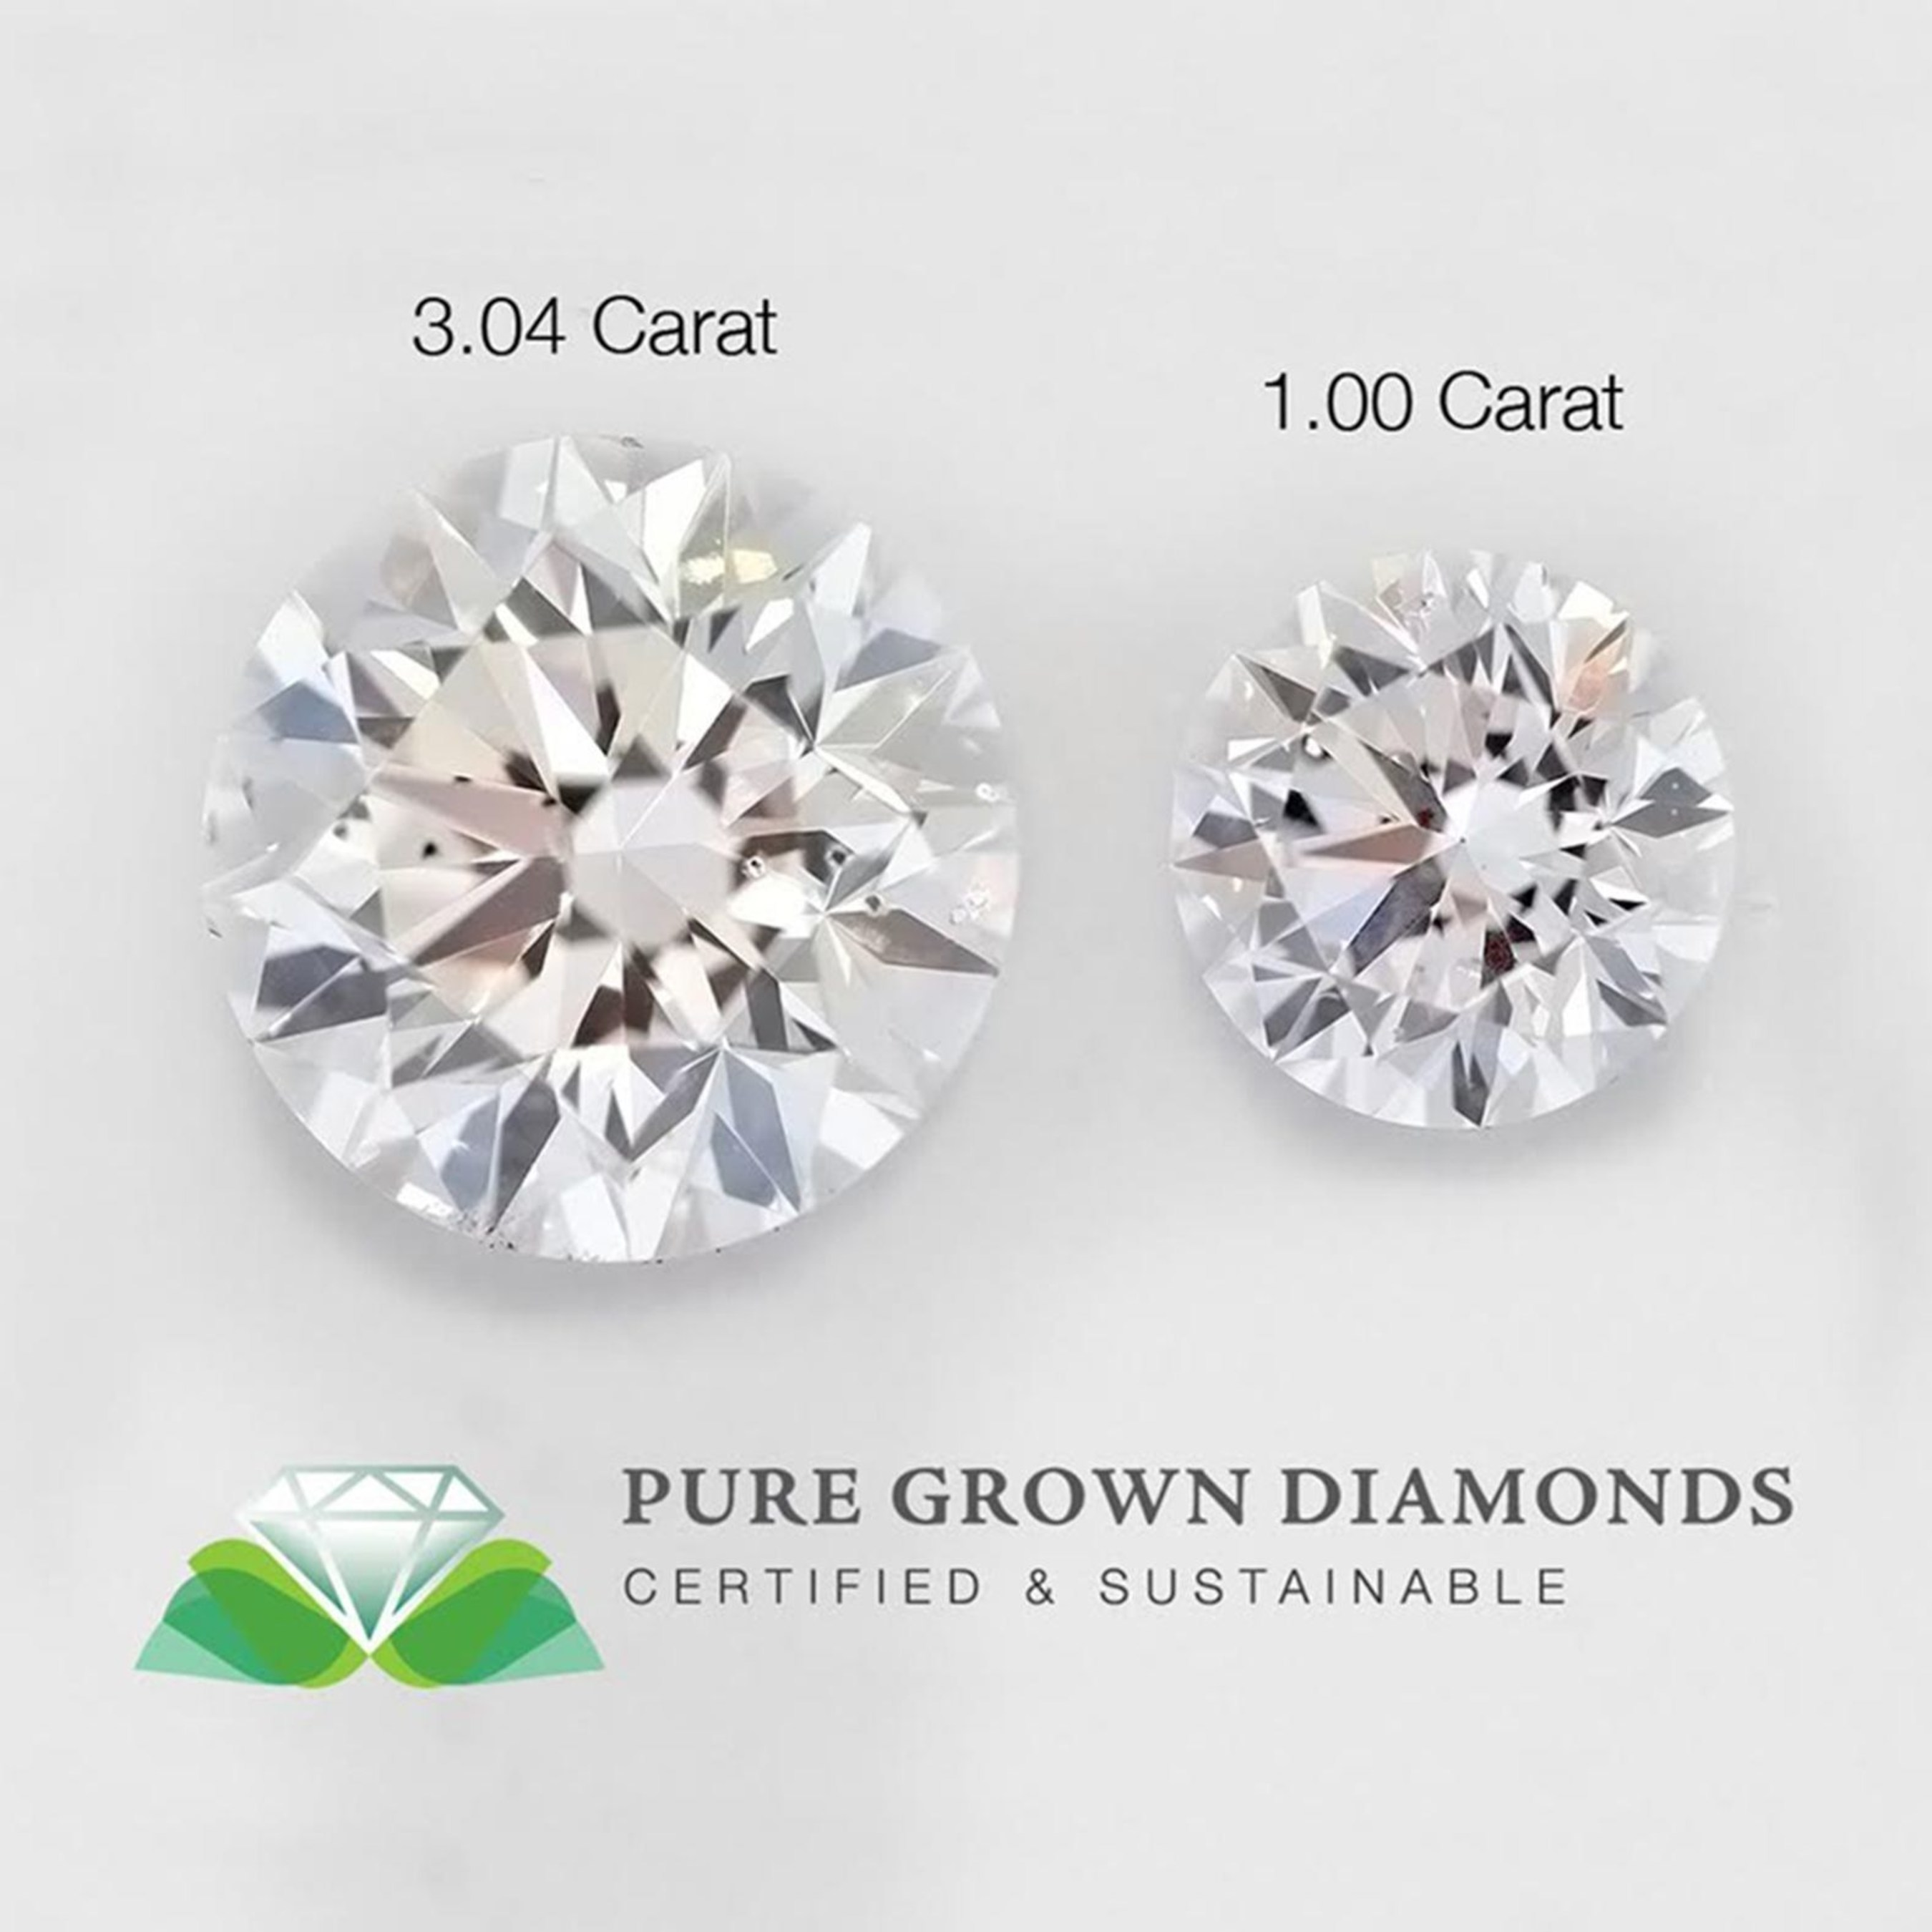 Valentine S Day World Largest Pure Grown Diamond Cultivated In Laboratory 3 04 Carats Side